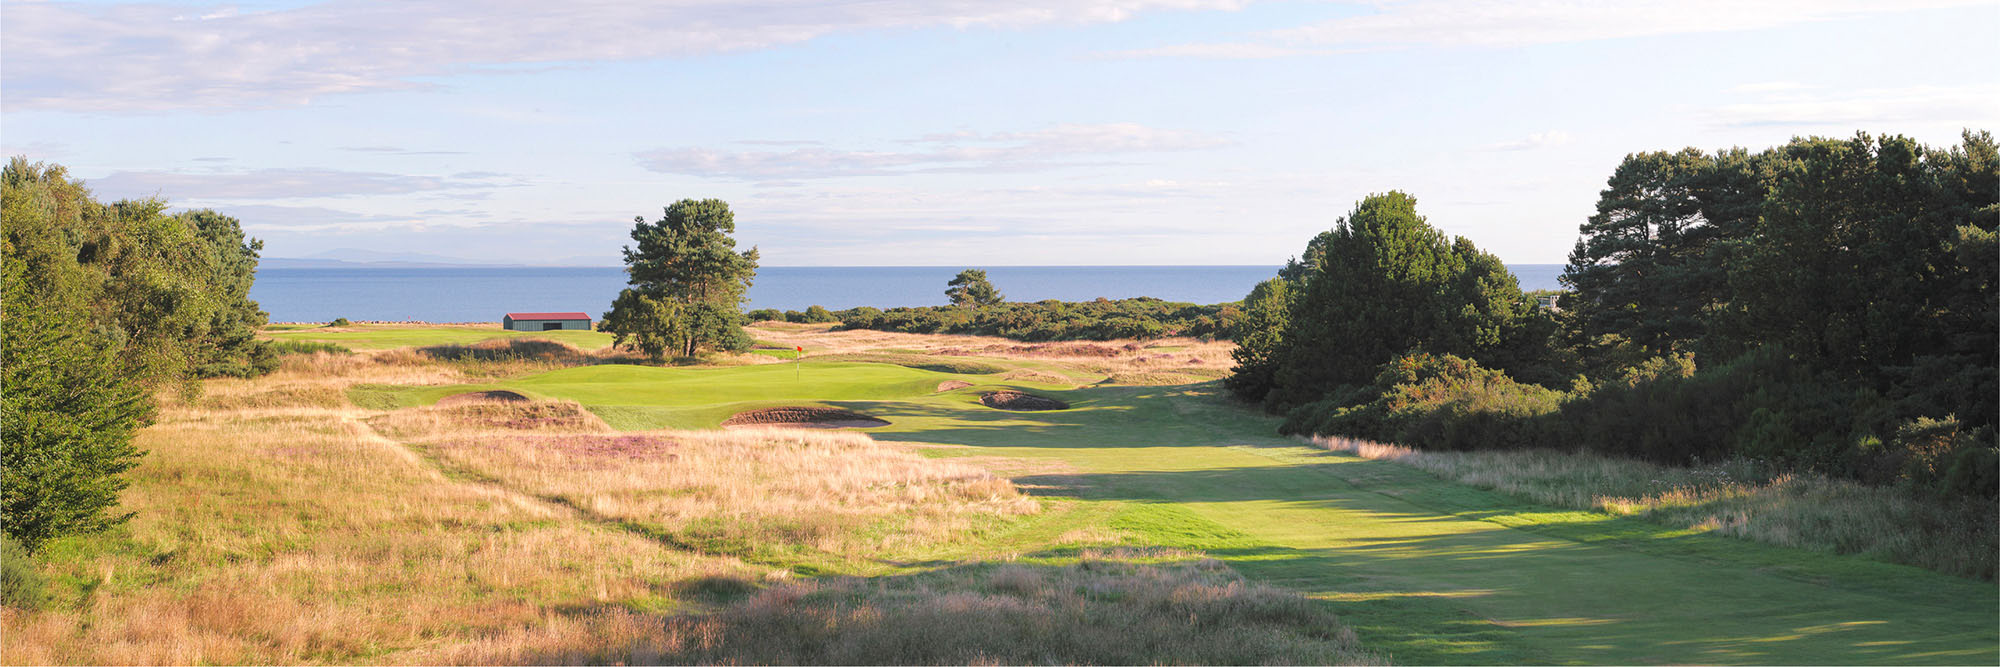 Golf Course Image - Nairn No. 14